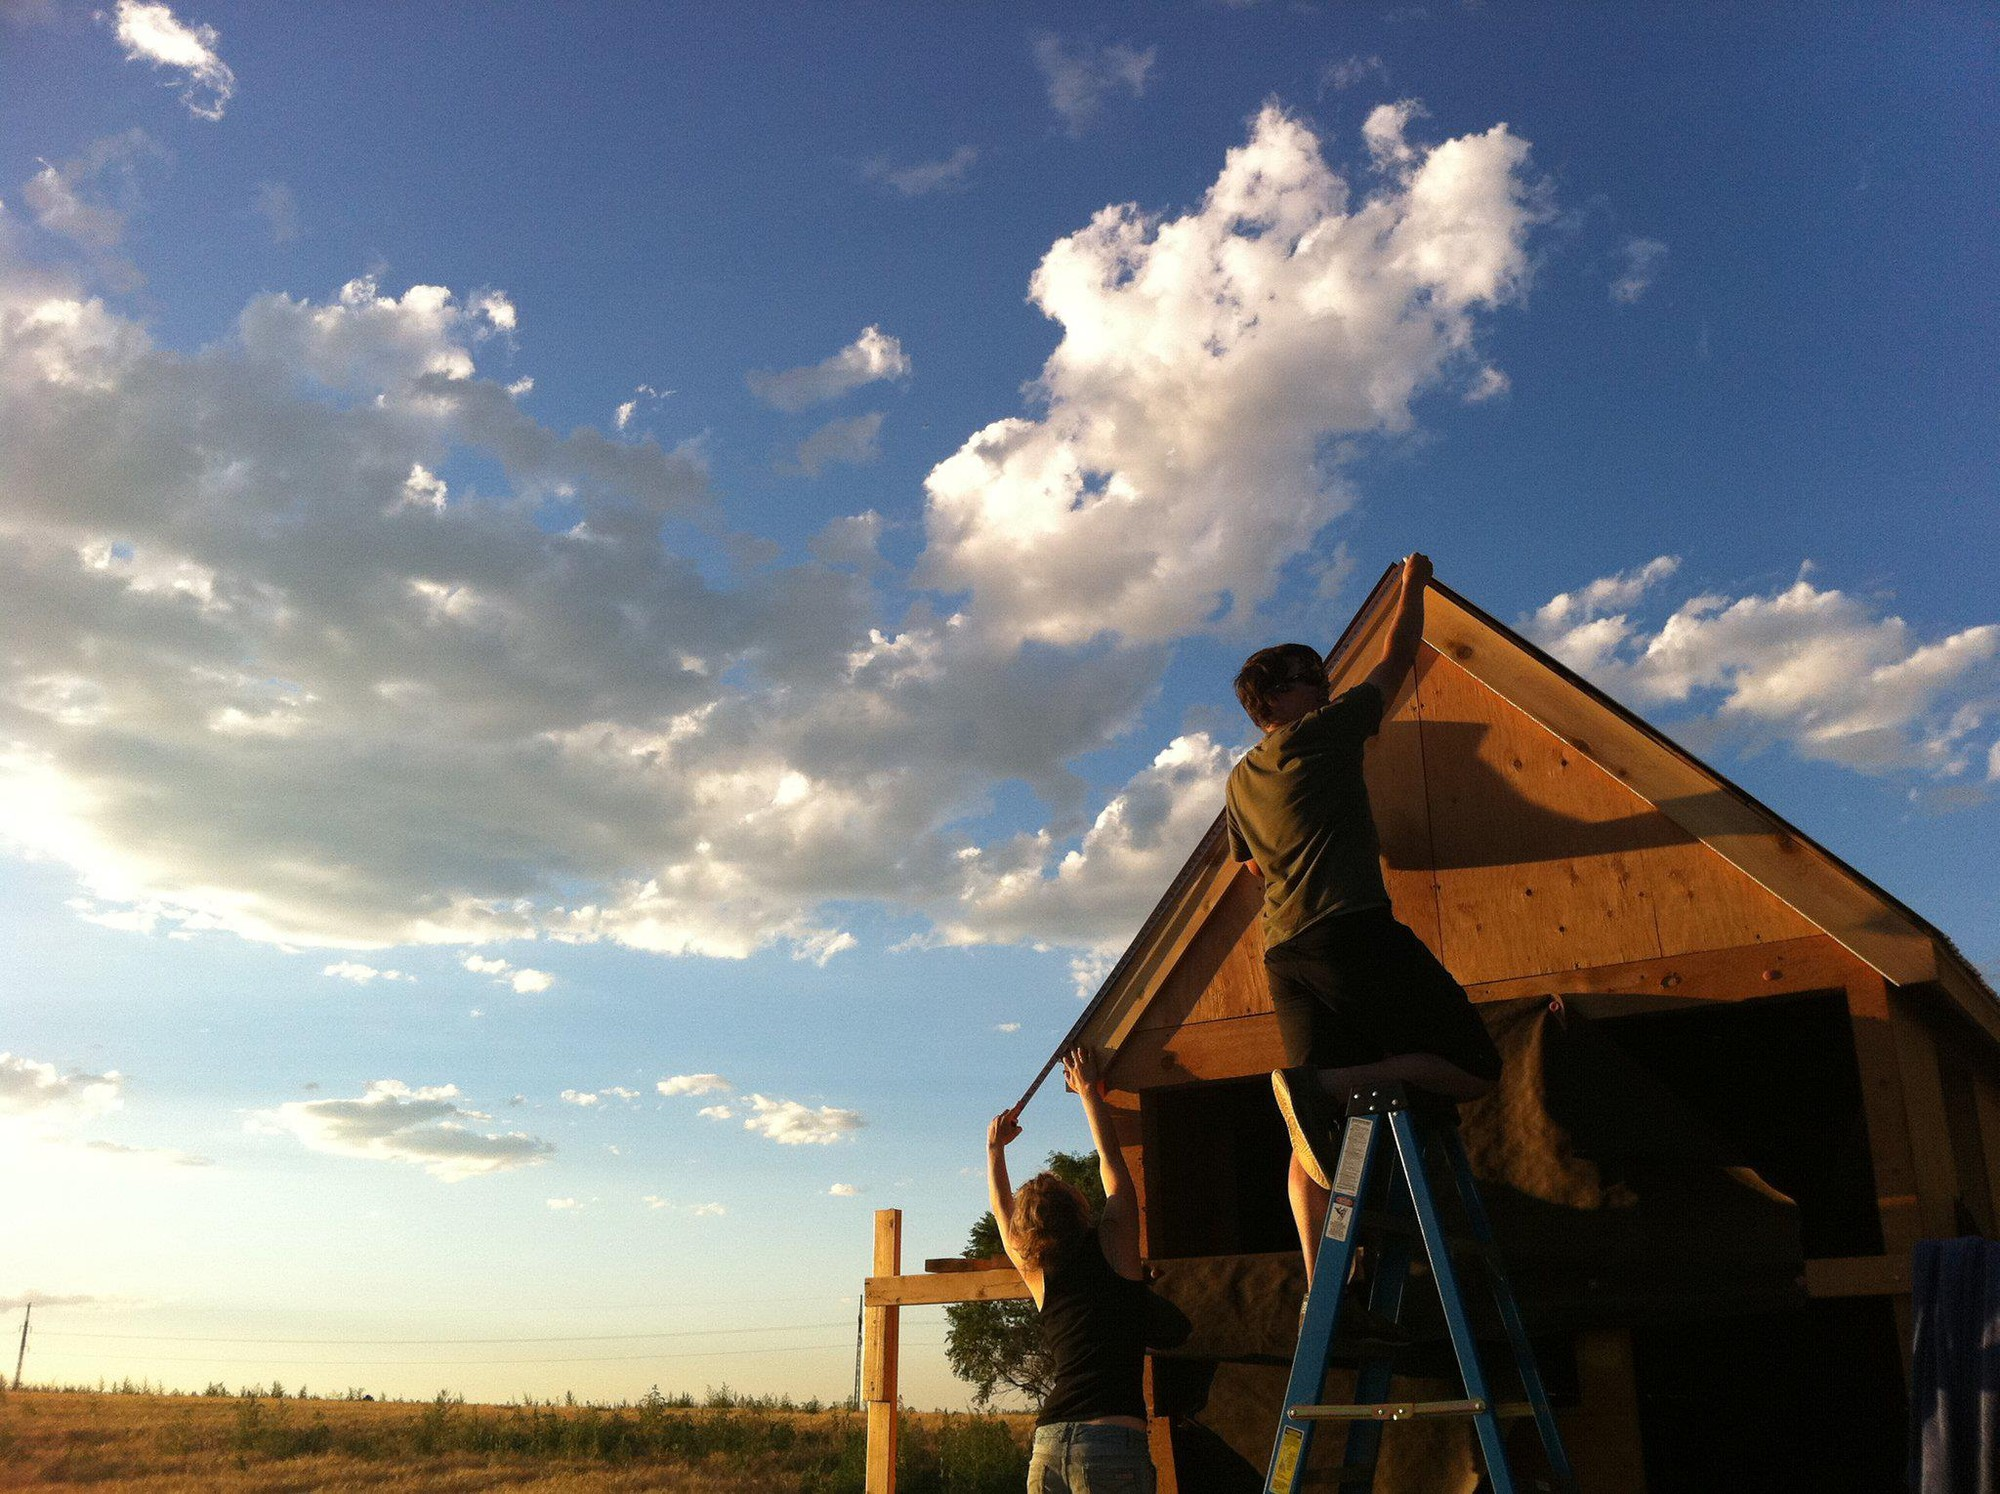 Tiny Houses: Downsizing The American Dream